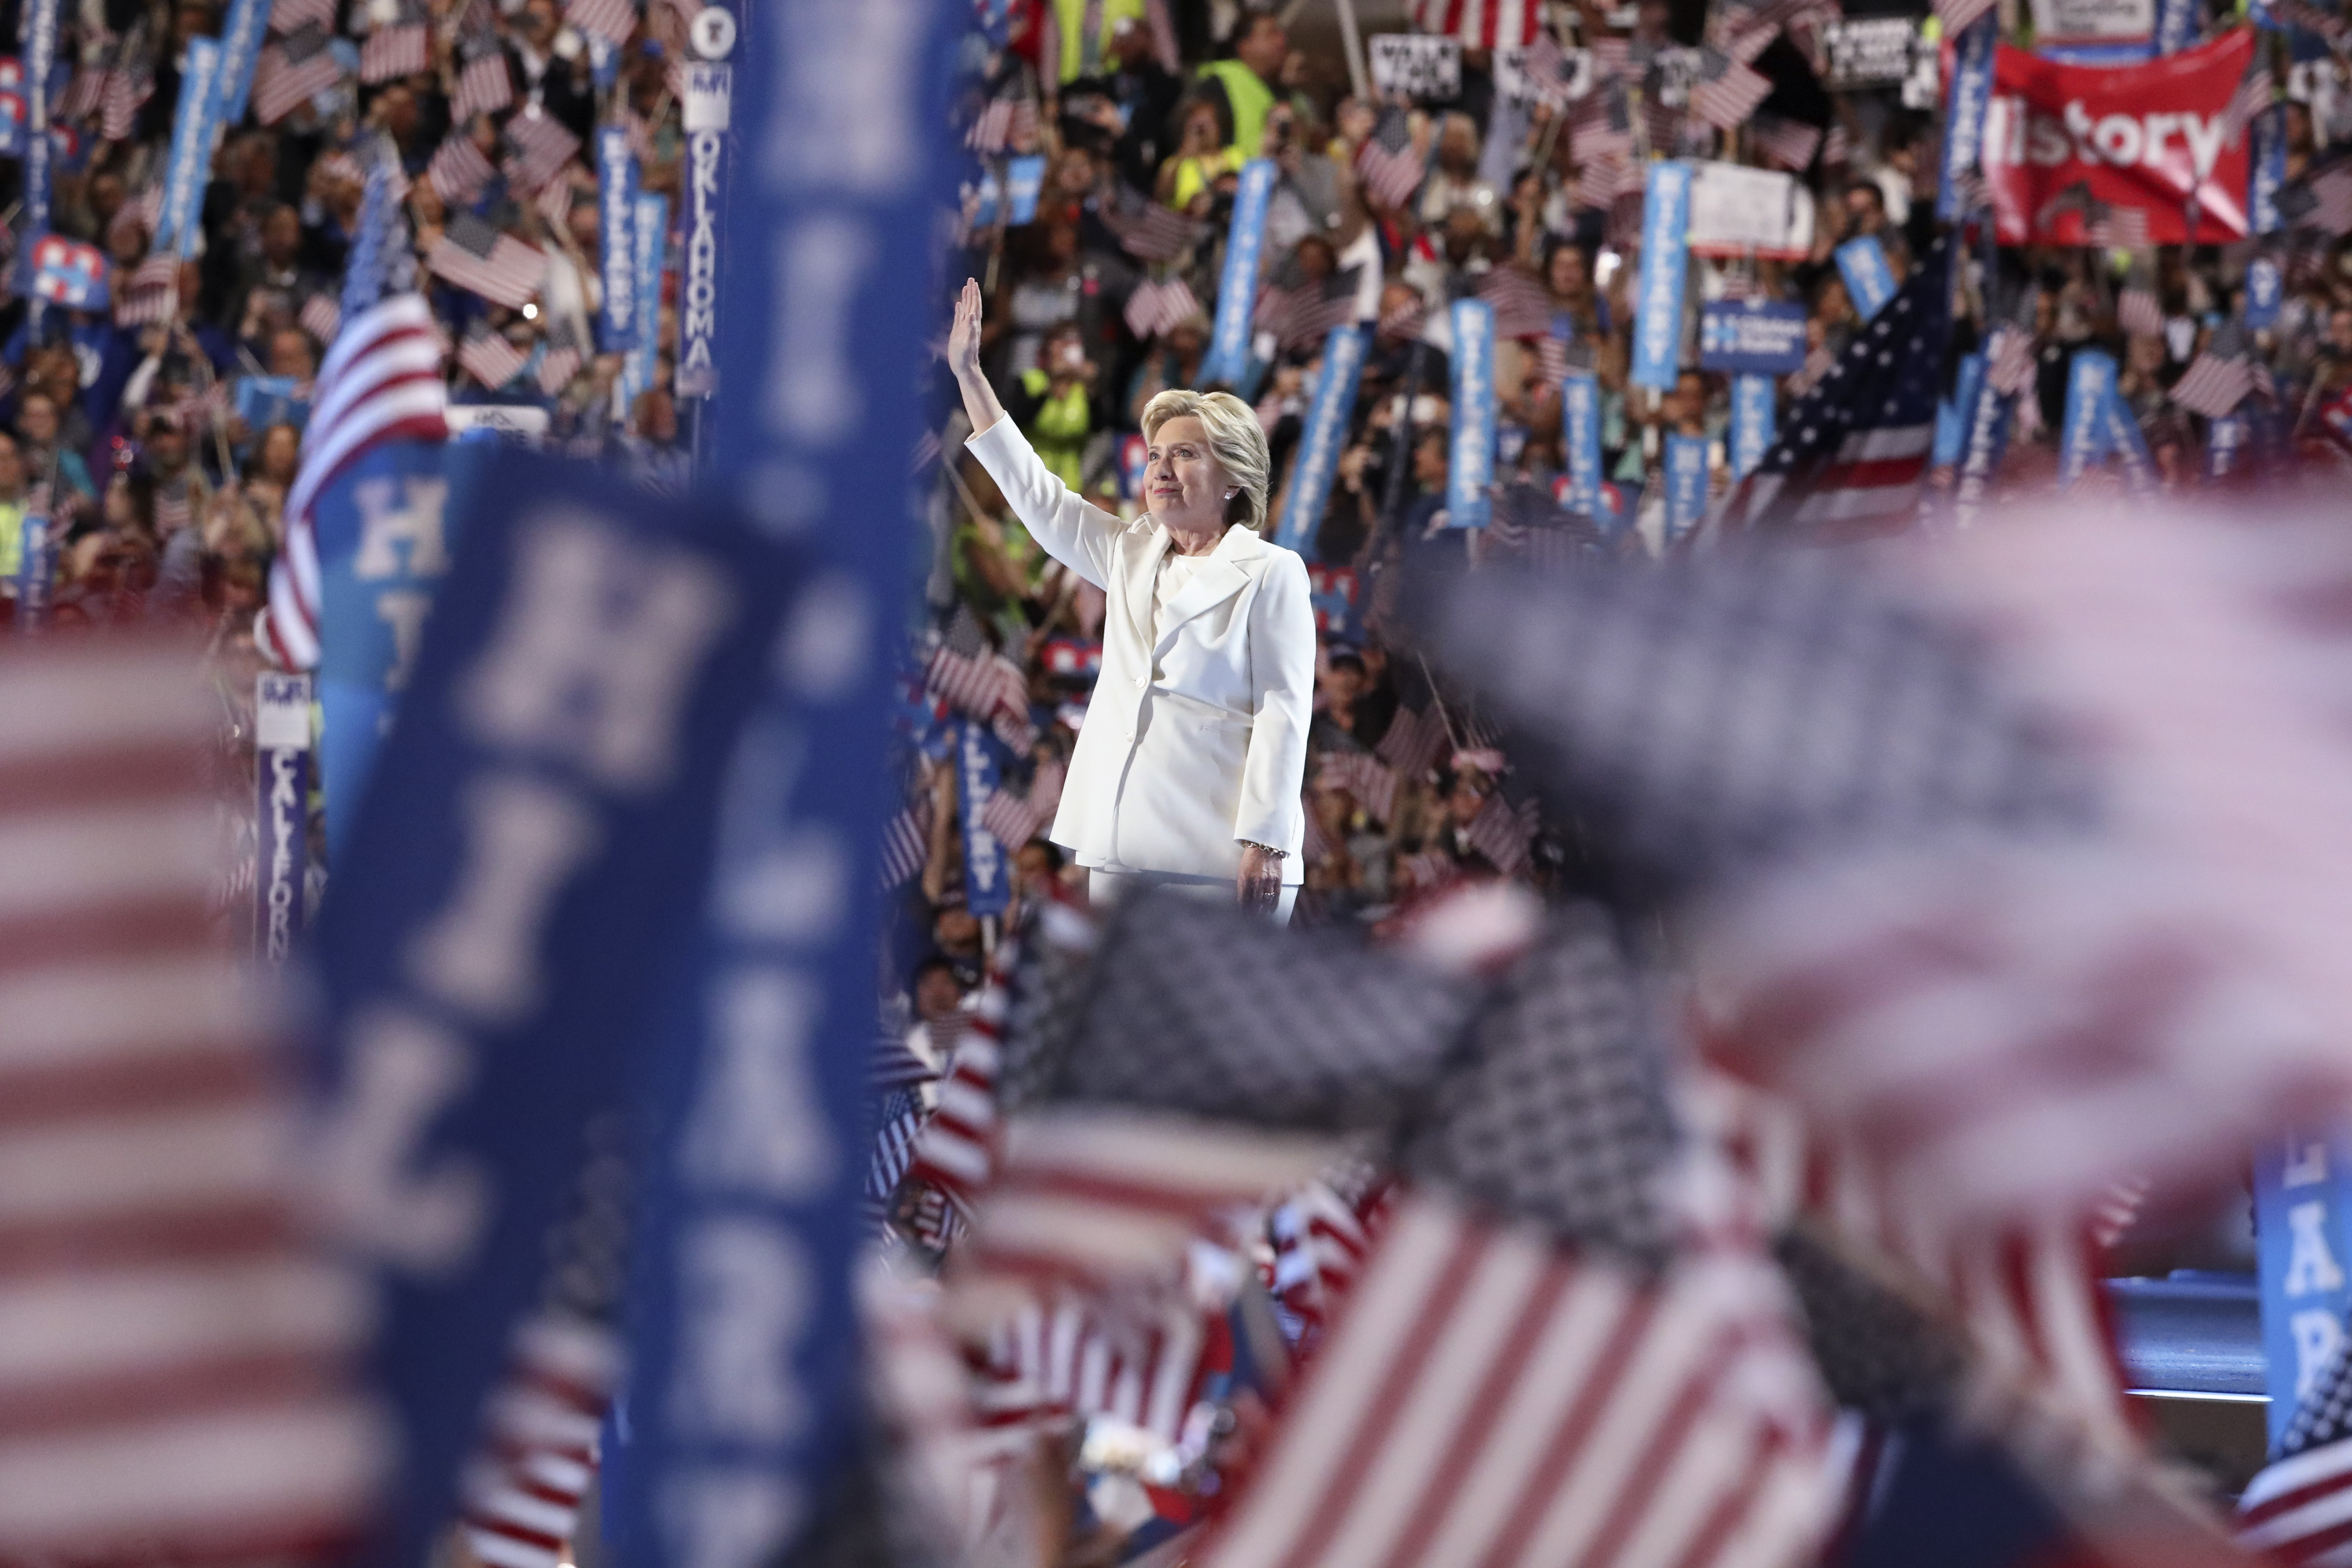 Hillary Clinton takes the stage to accept the party's presidential nomination, at the Democratic National Convention in Philadelphia, July 28, 2016. (Sam Hodgson/The New York Times)